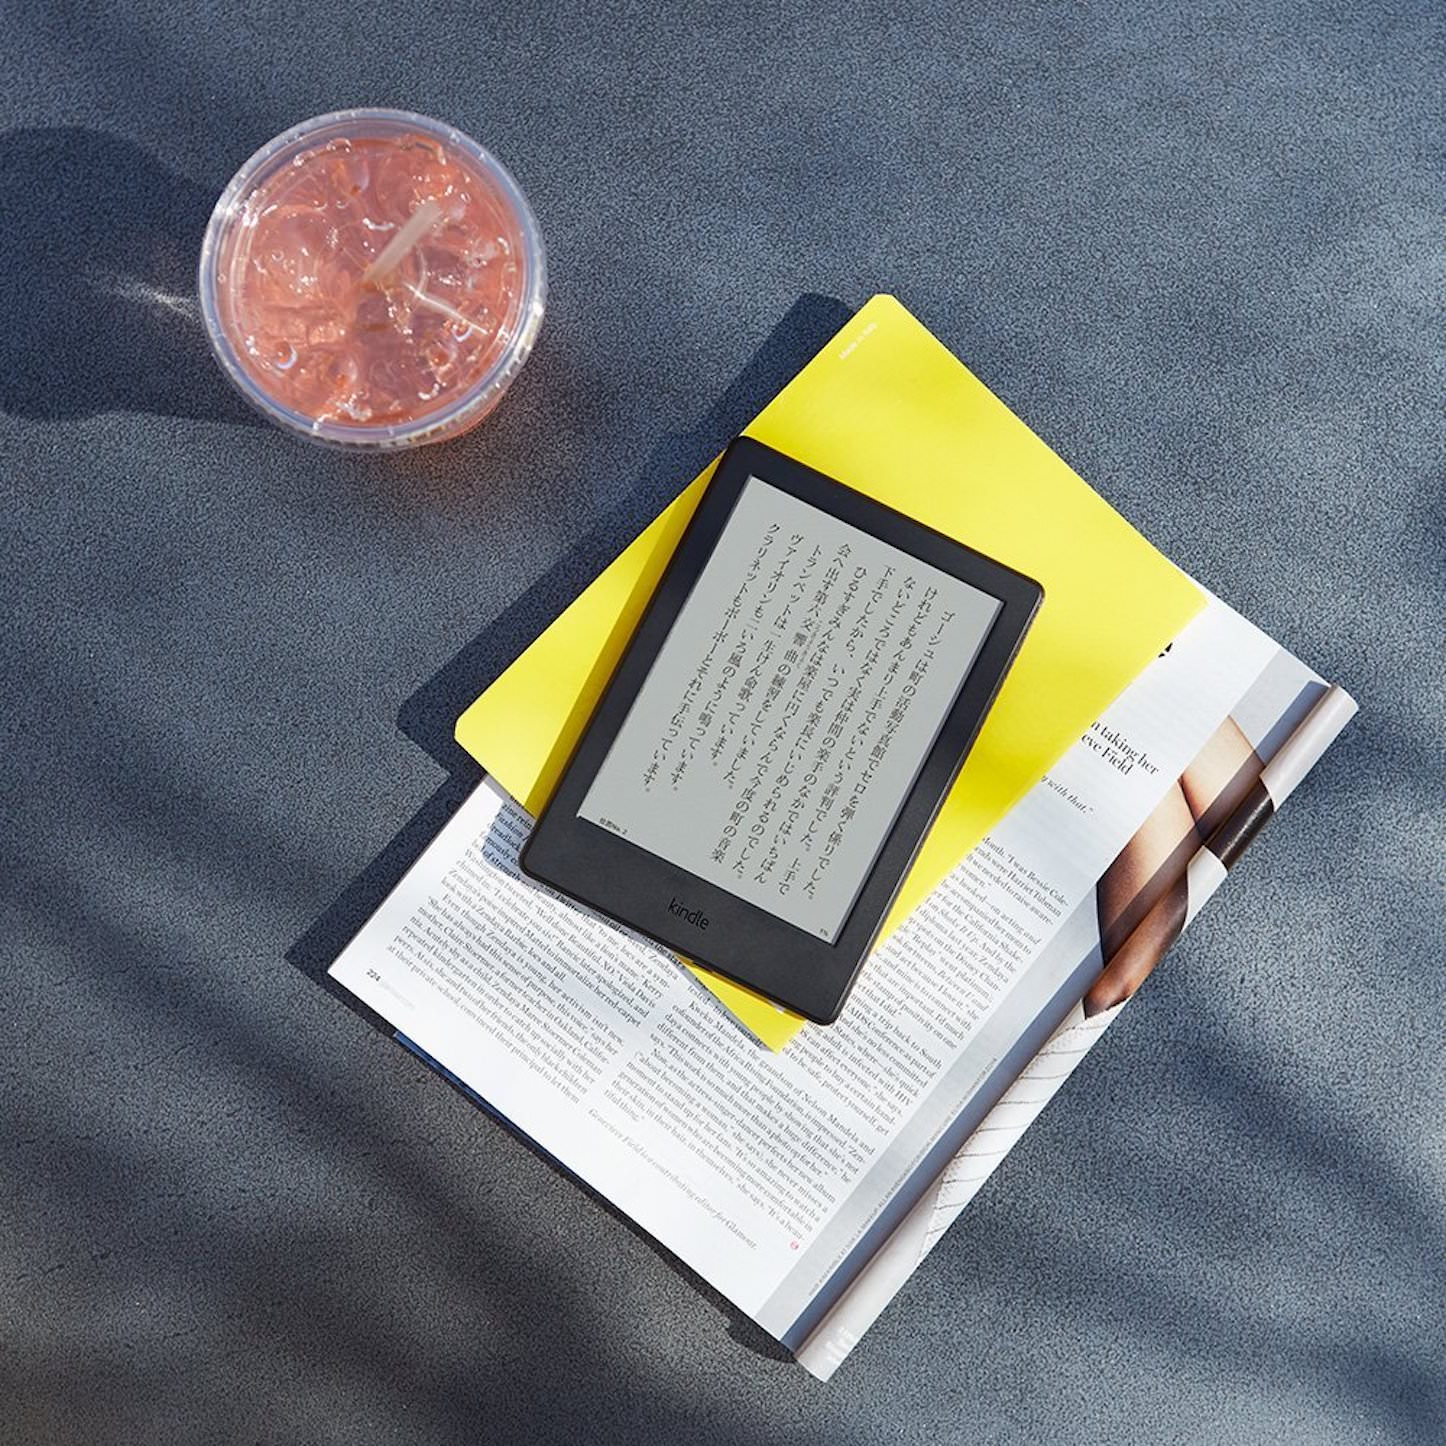 Kindle New model Sale